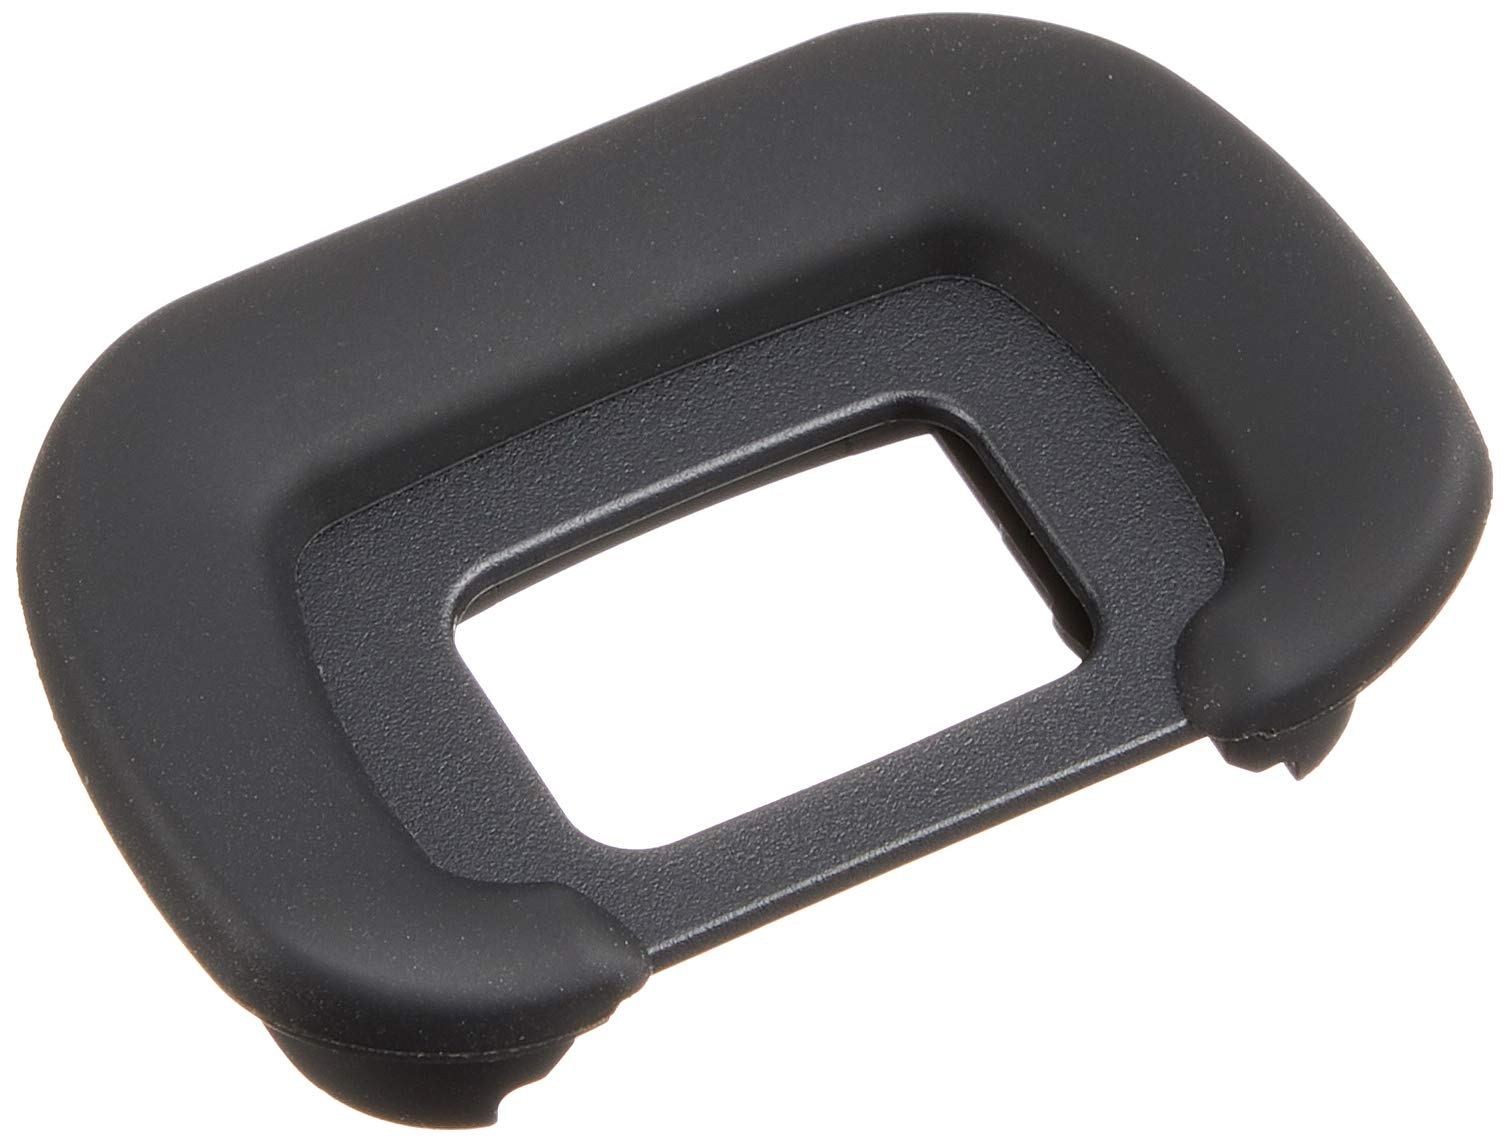 Japan Pentax Eyecup FT for K-1 Genuine Pentax K-1 Eyecup